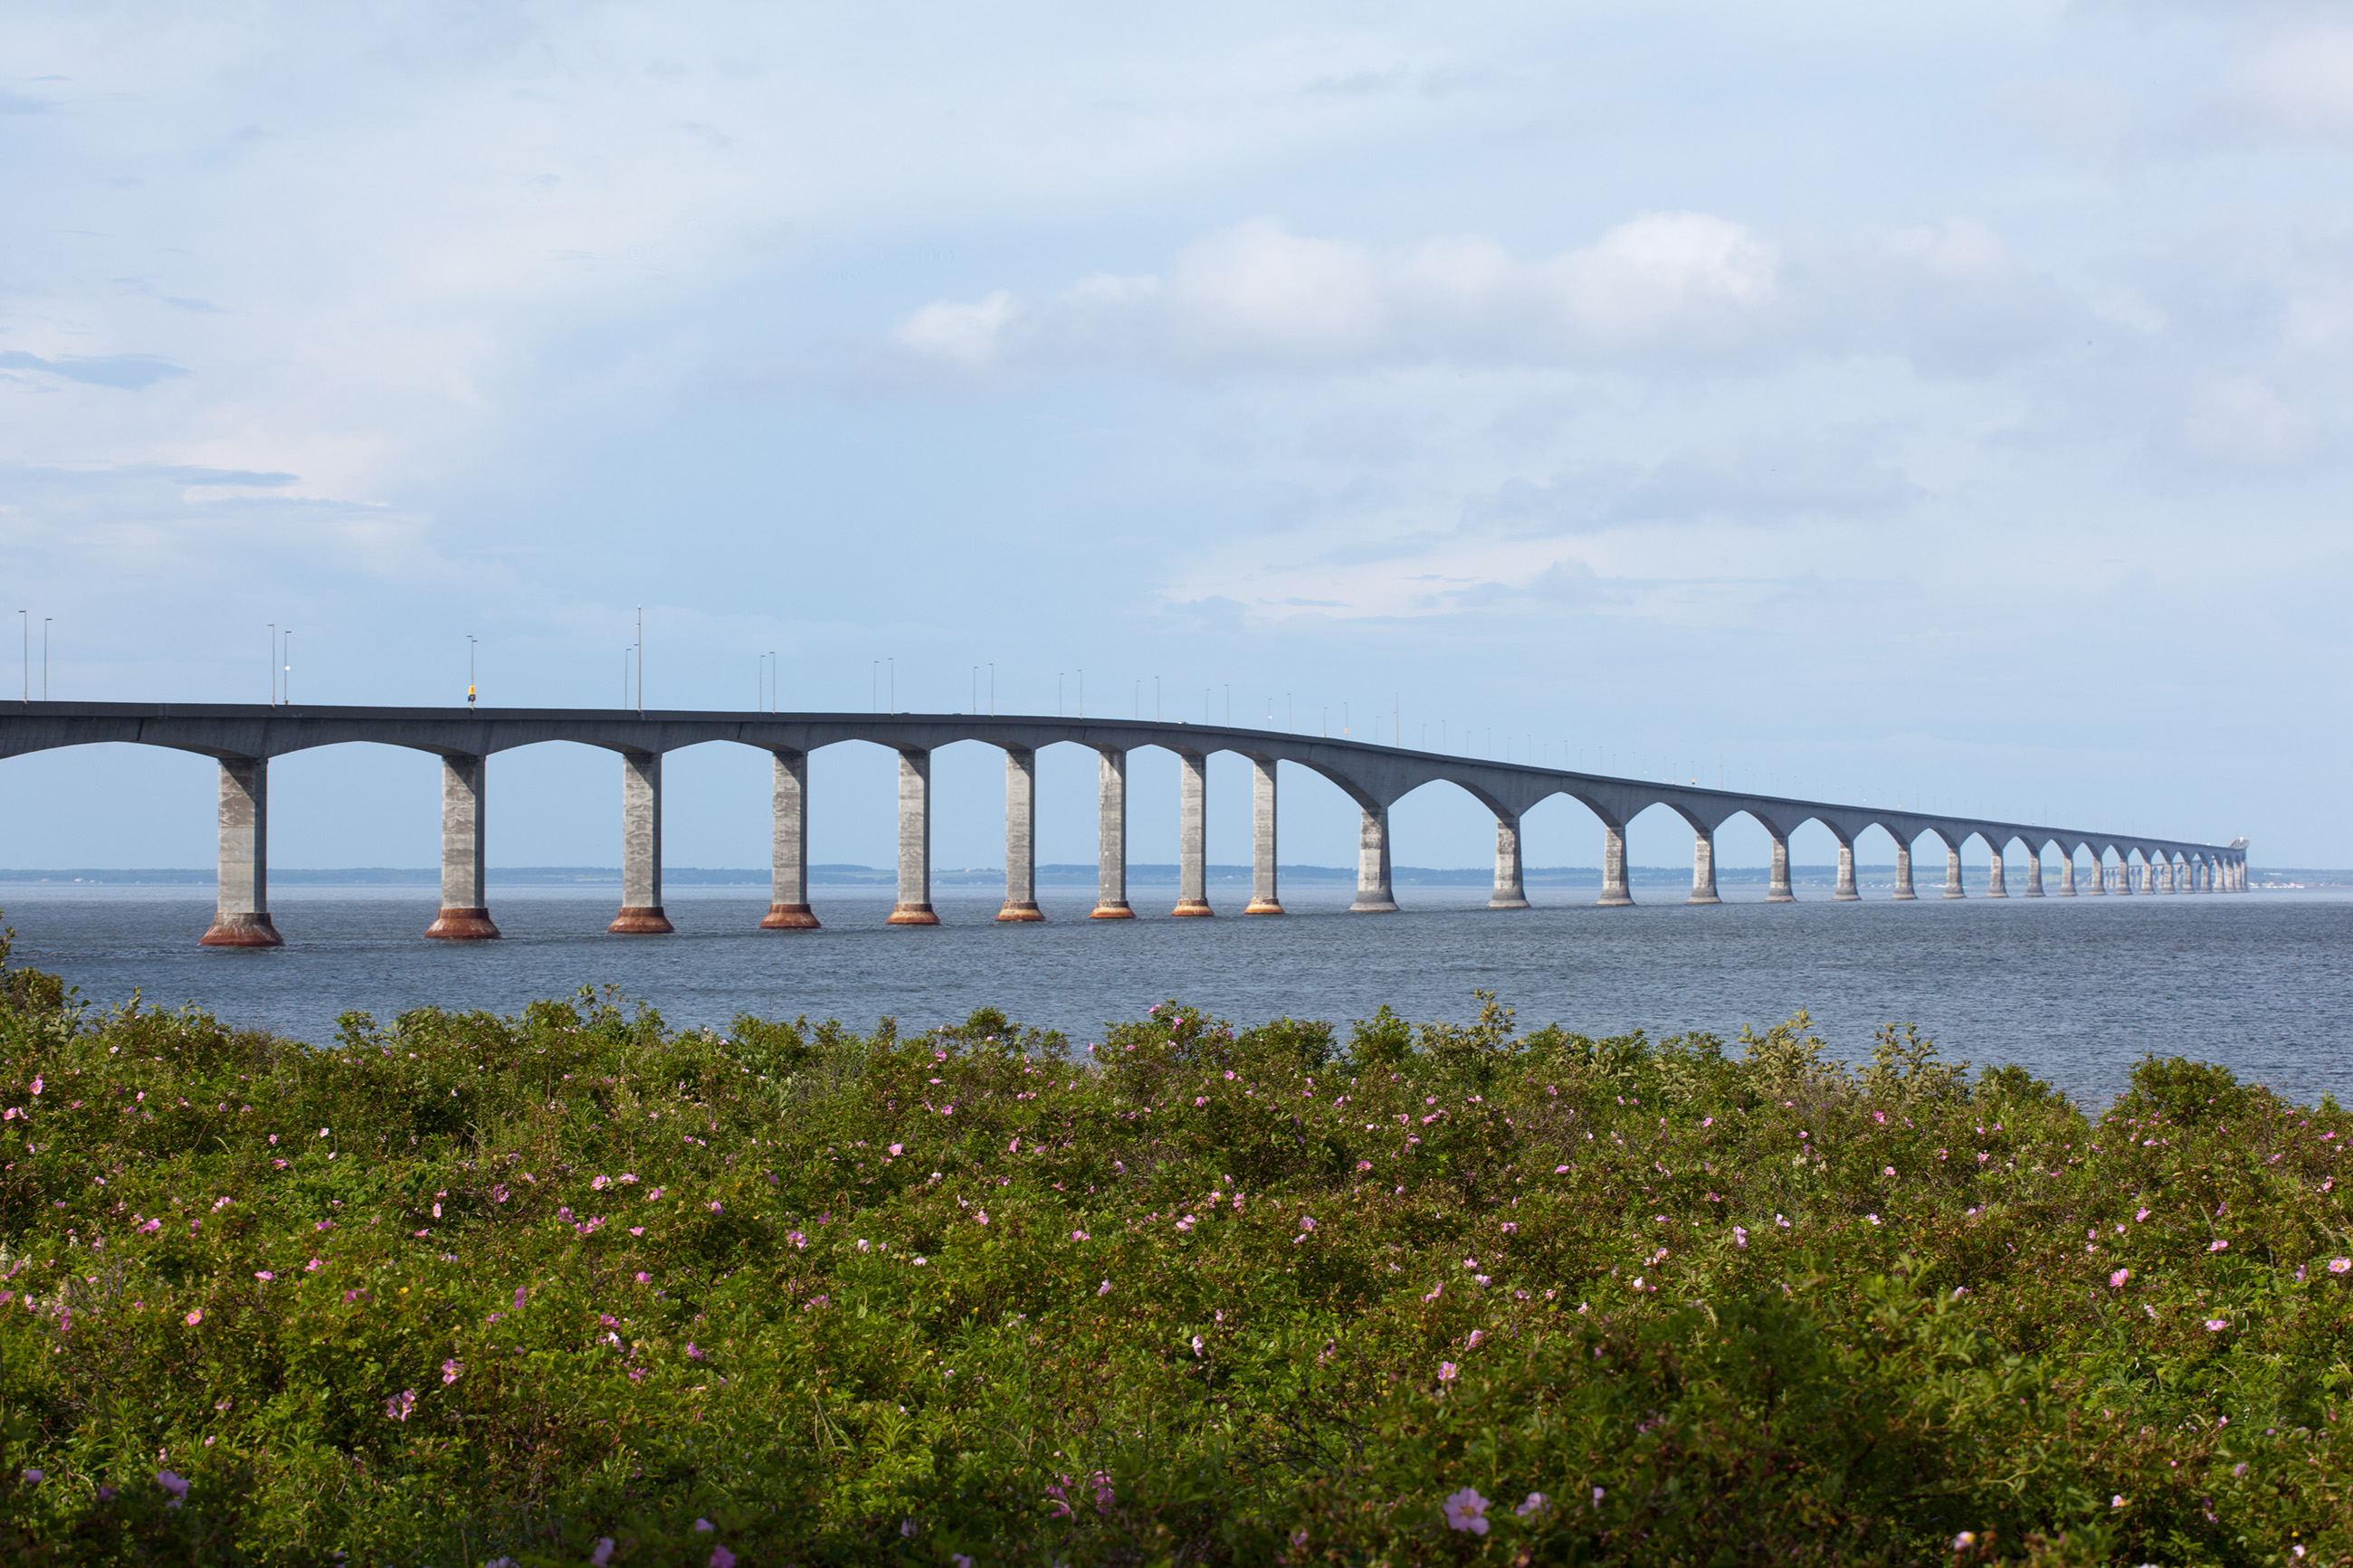 Bridge, Atlantic, New, Travel, Transportation, HQ Photo